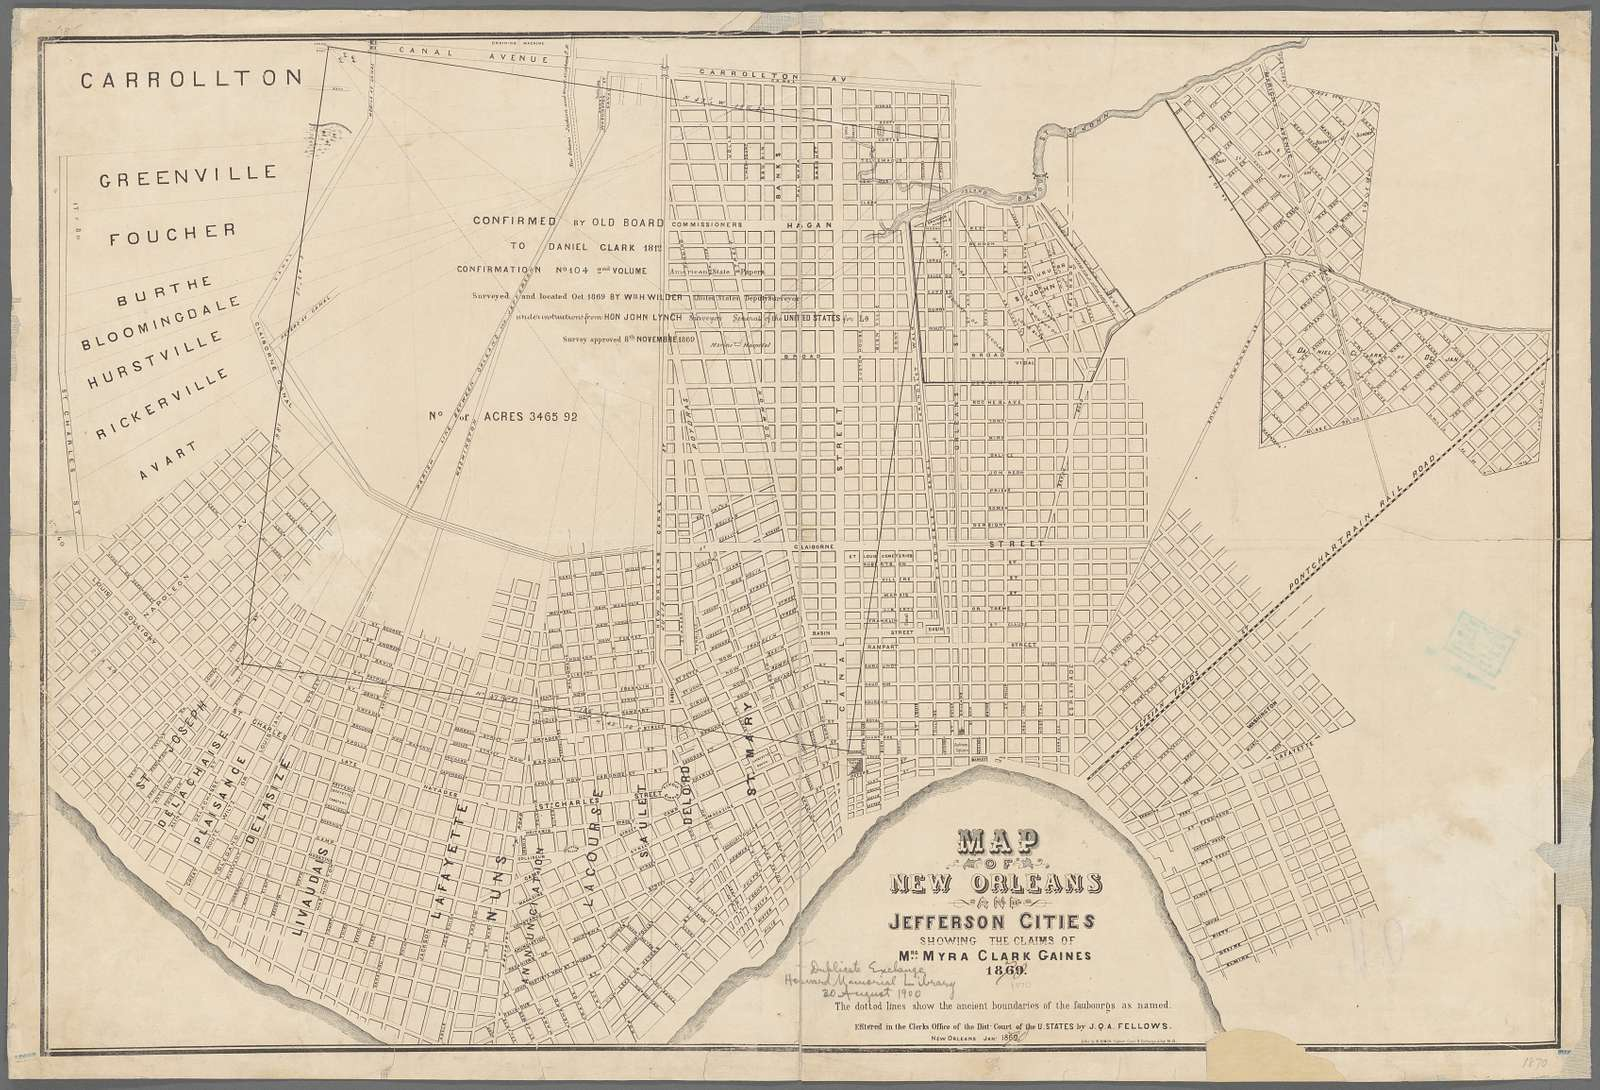 Map of New Orleans and Jefferson Cities showing the claims of Mrs. Myra Clark Gaines, 1869